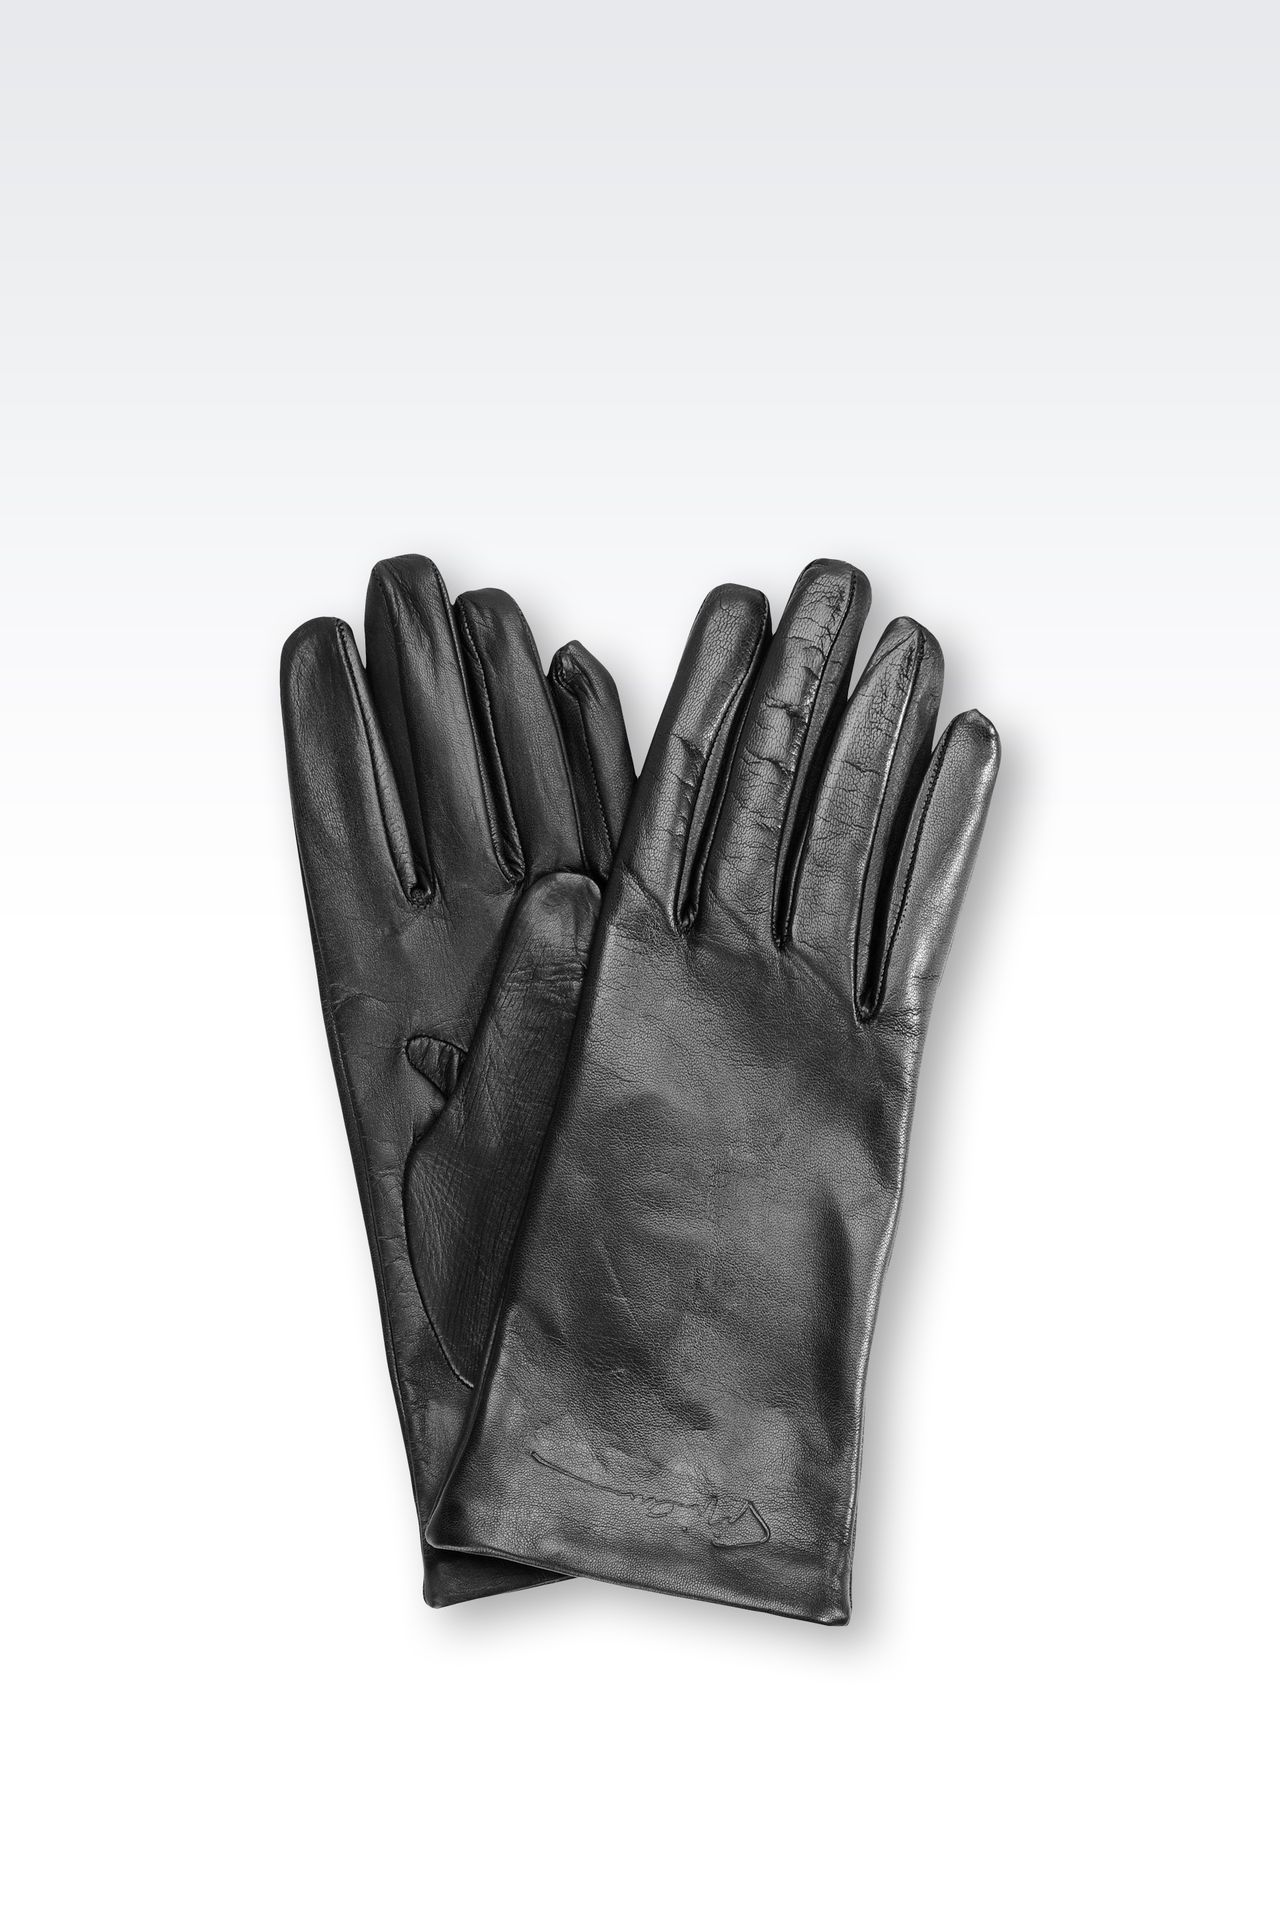 Armani exchange black leather gloves - Leather Gloves With Logo Gloves Women By Armani 0